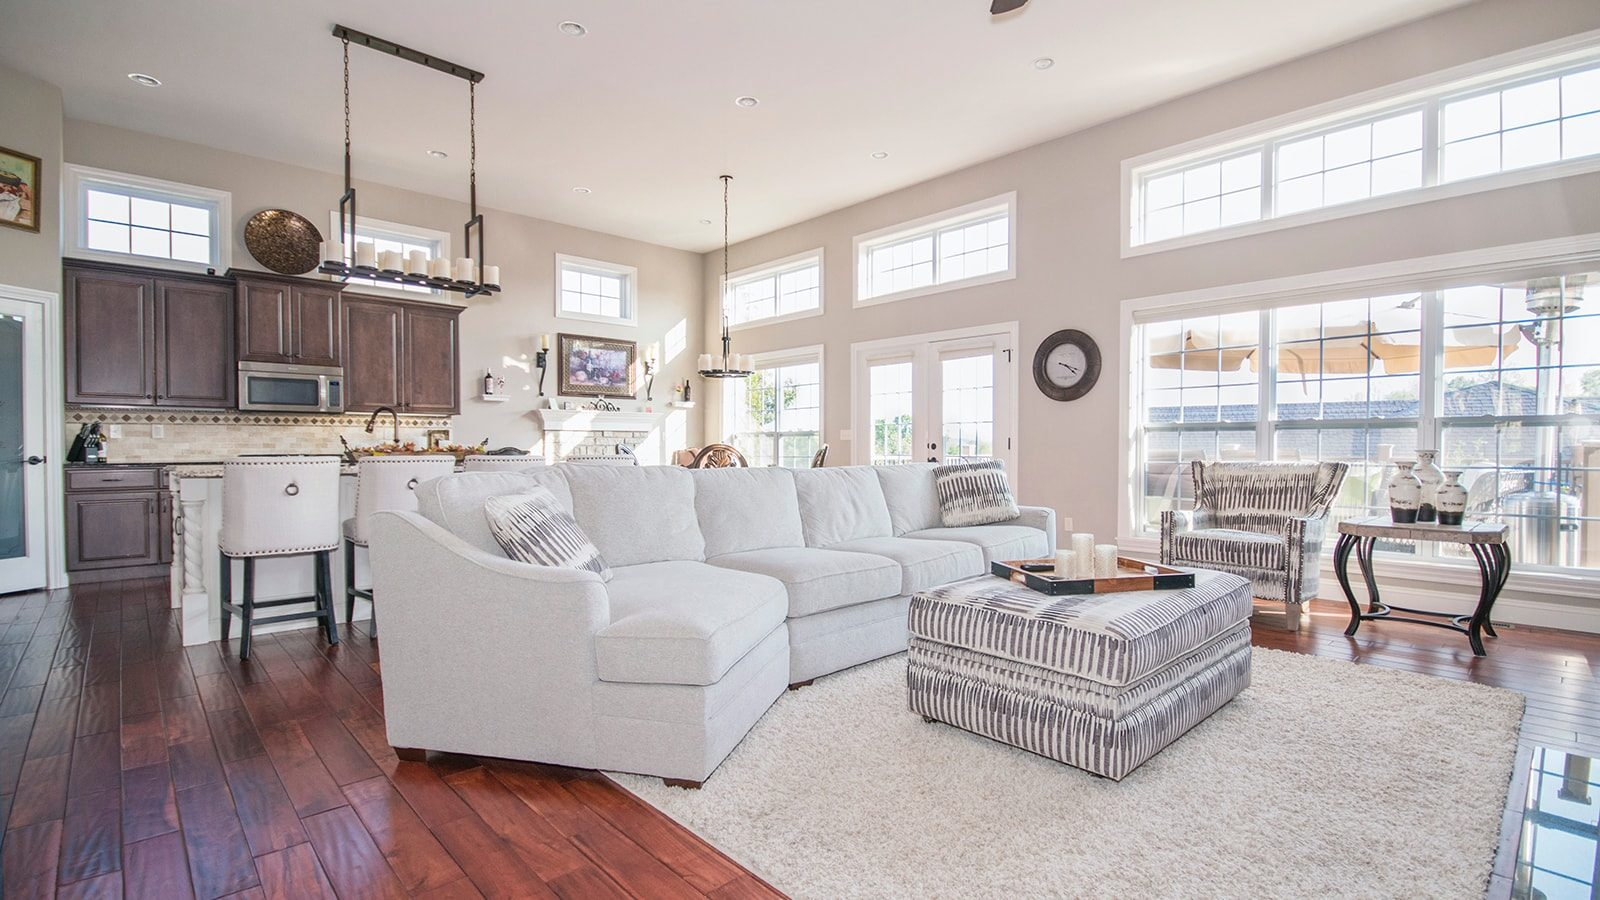 3 Fantastic Examples of How to Use Hardwood Floors in Your Home